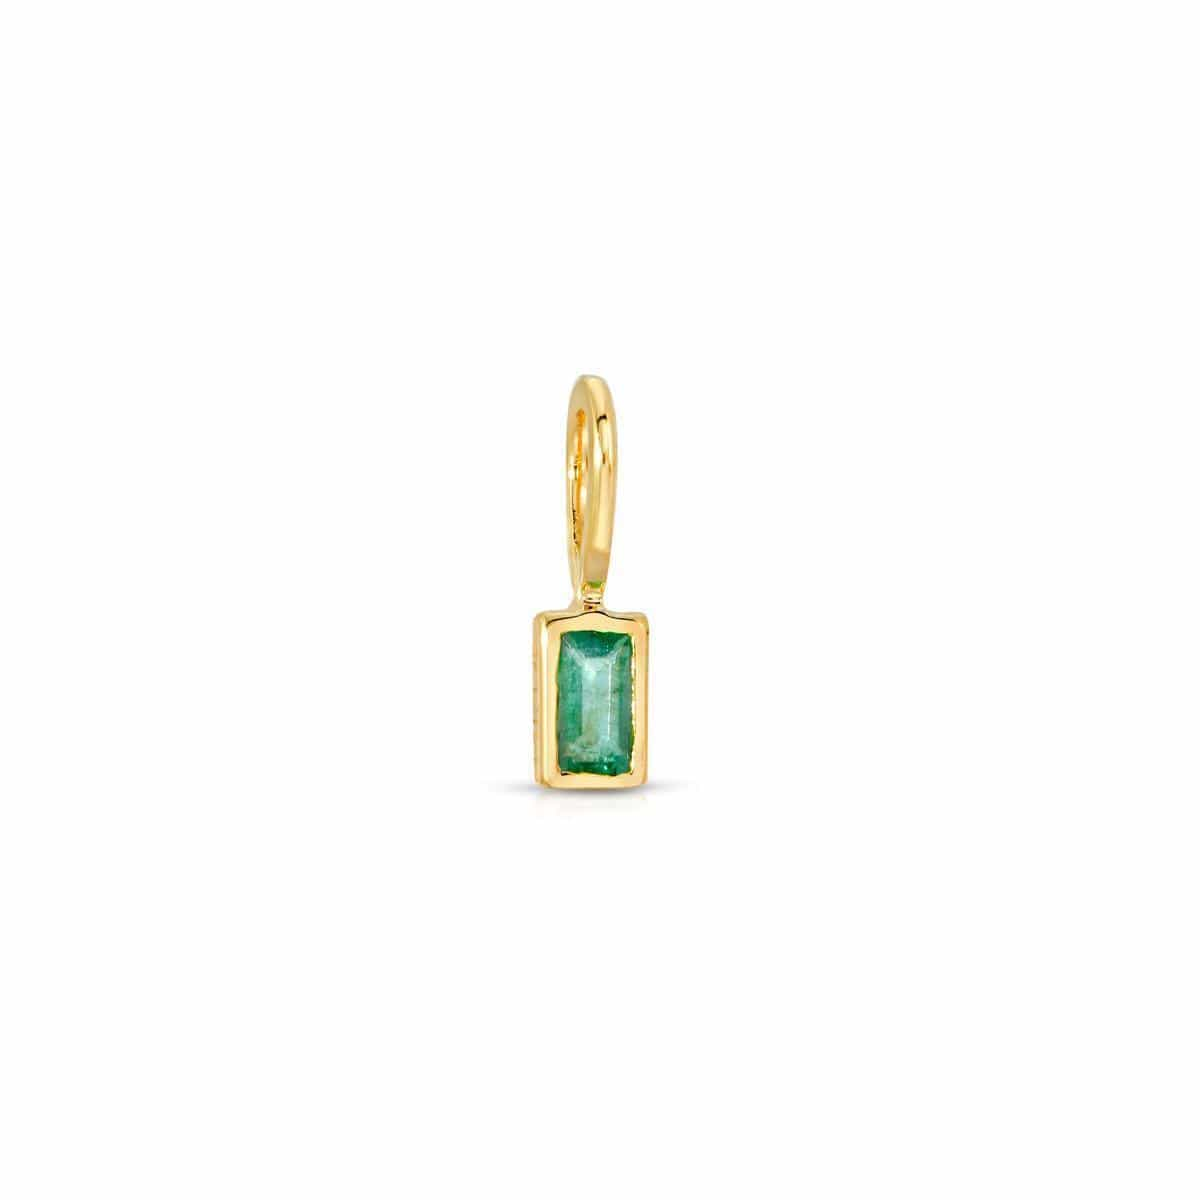 Emerald Baguette Cut Gold Charm